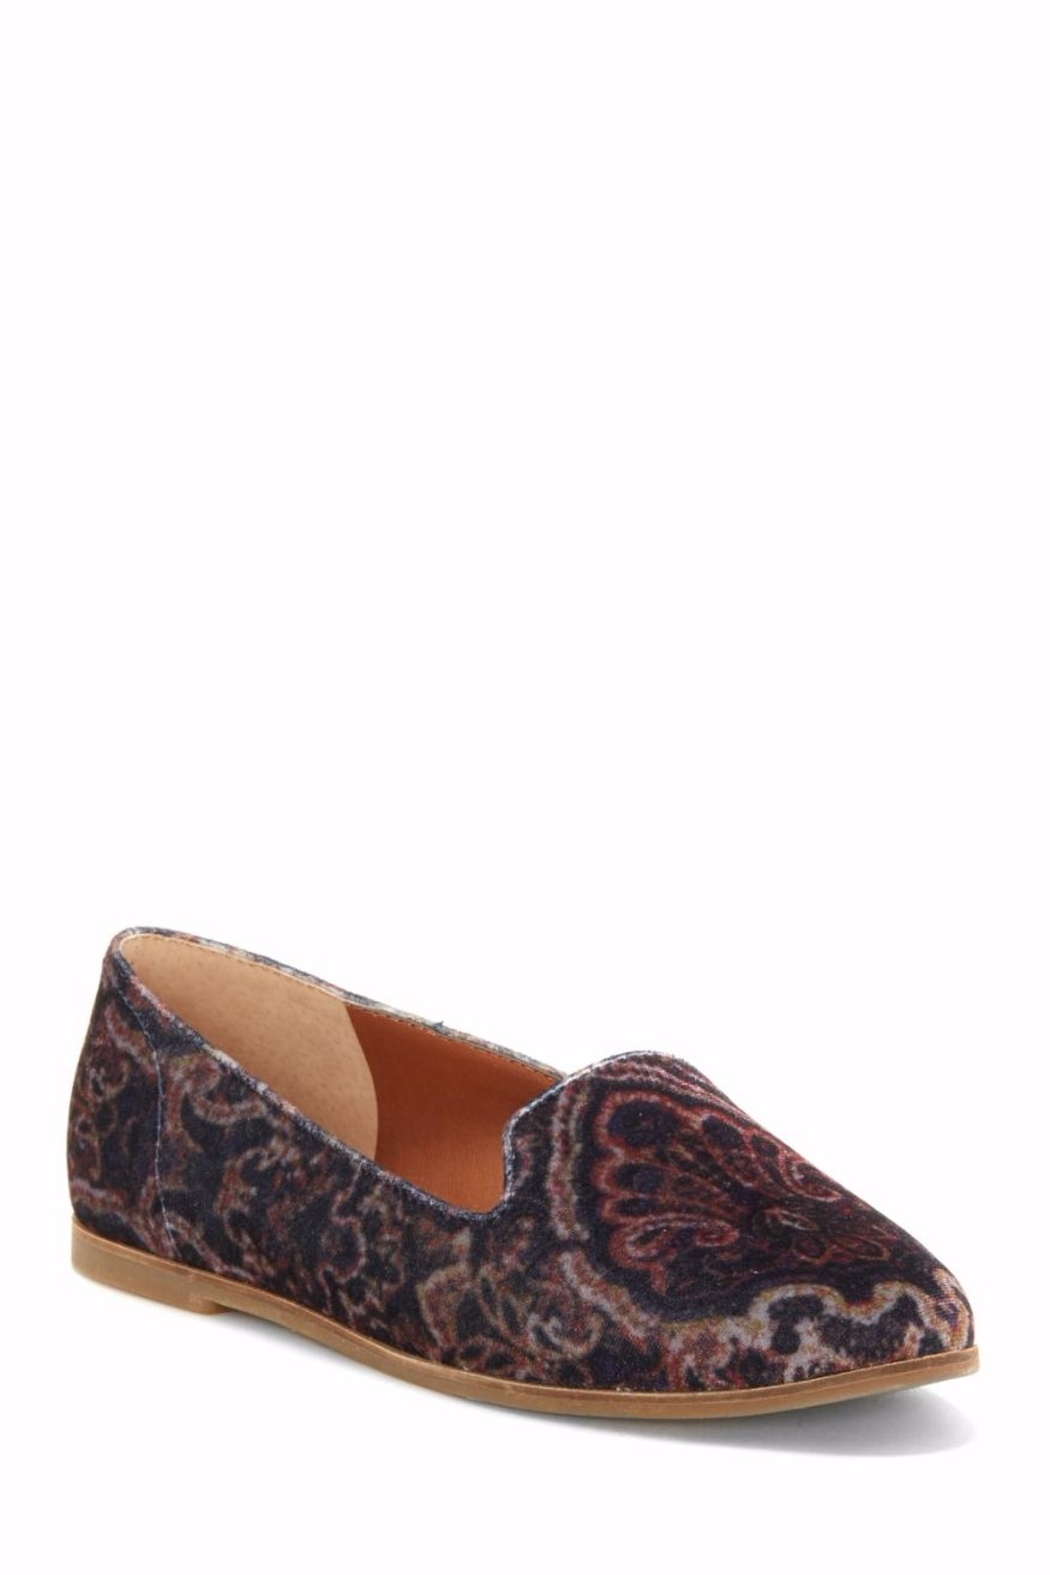 Lucky Brand Carlyn Flat - Front Full Image